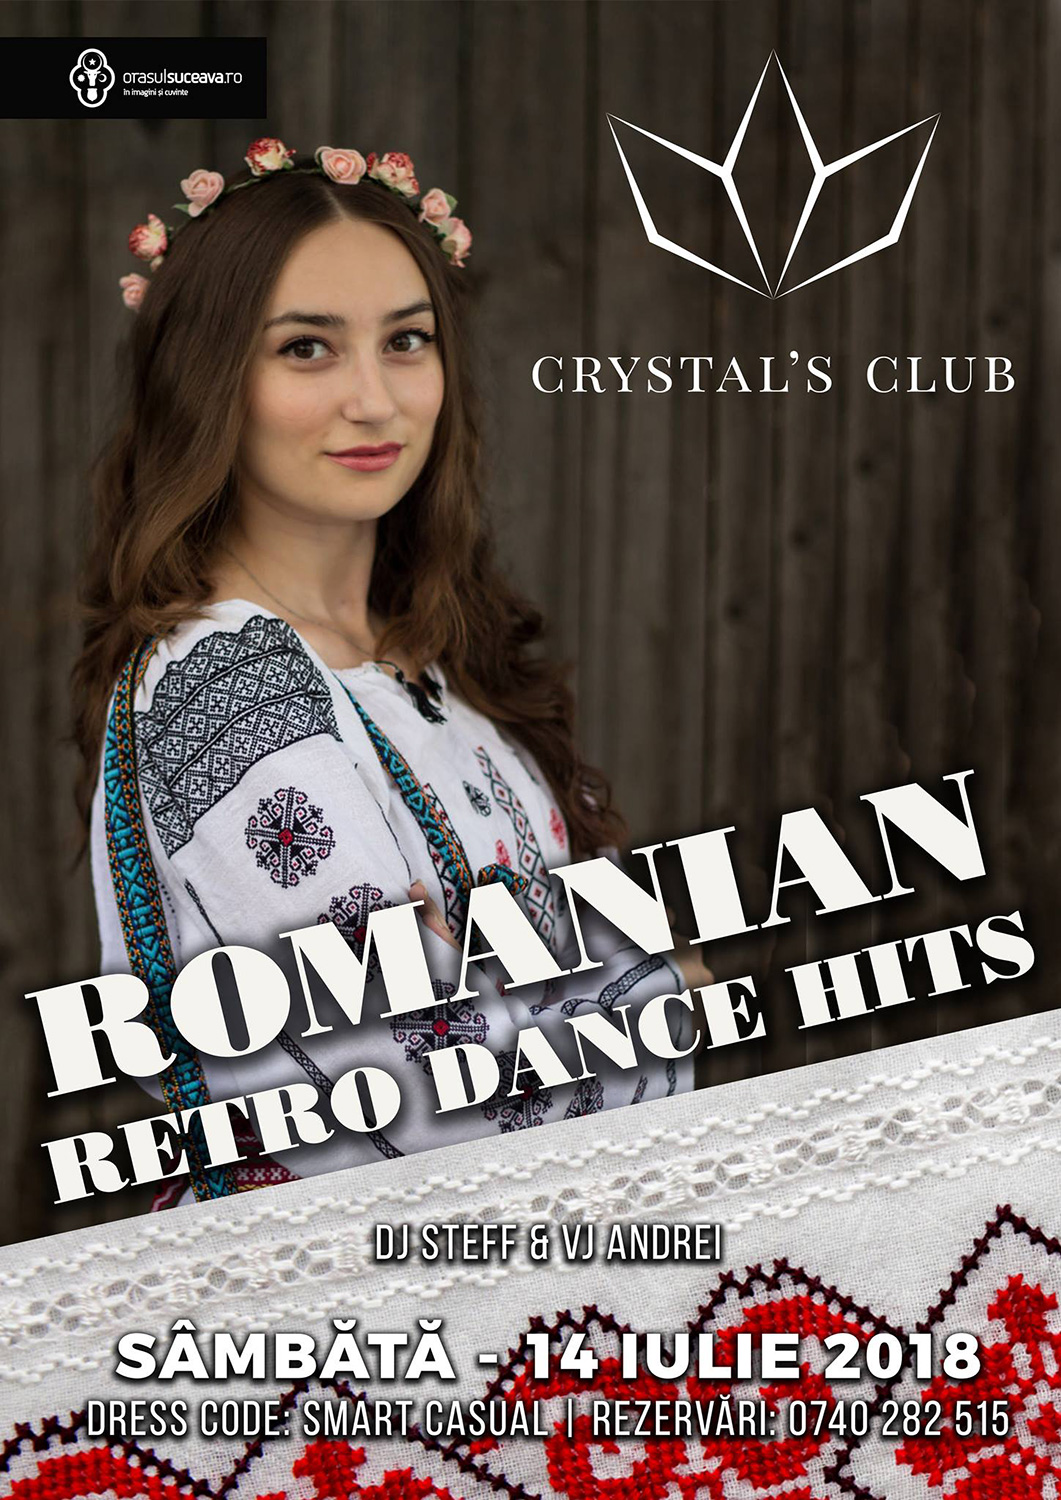 Romanian Retro Dance Hits